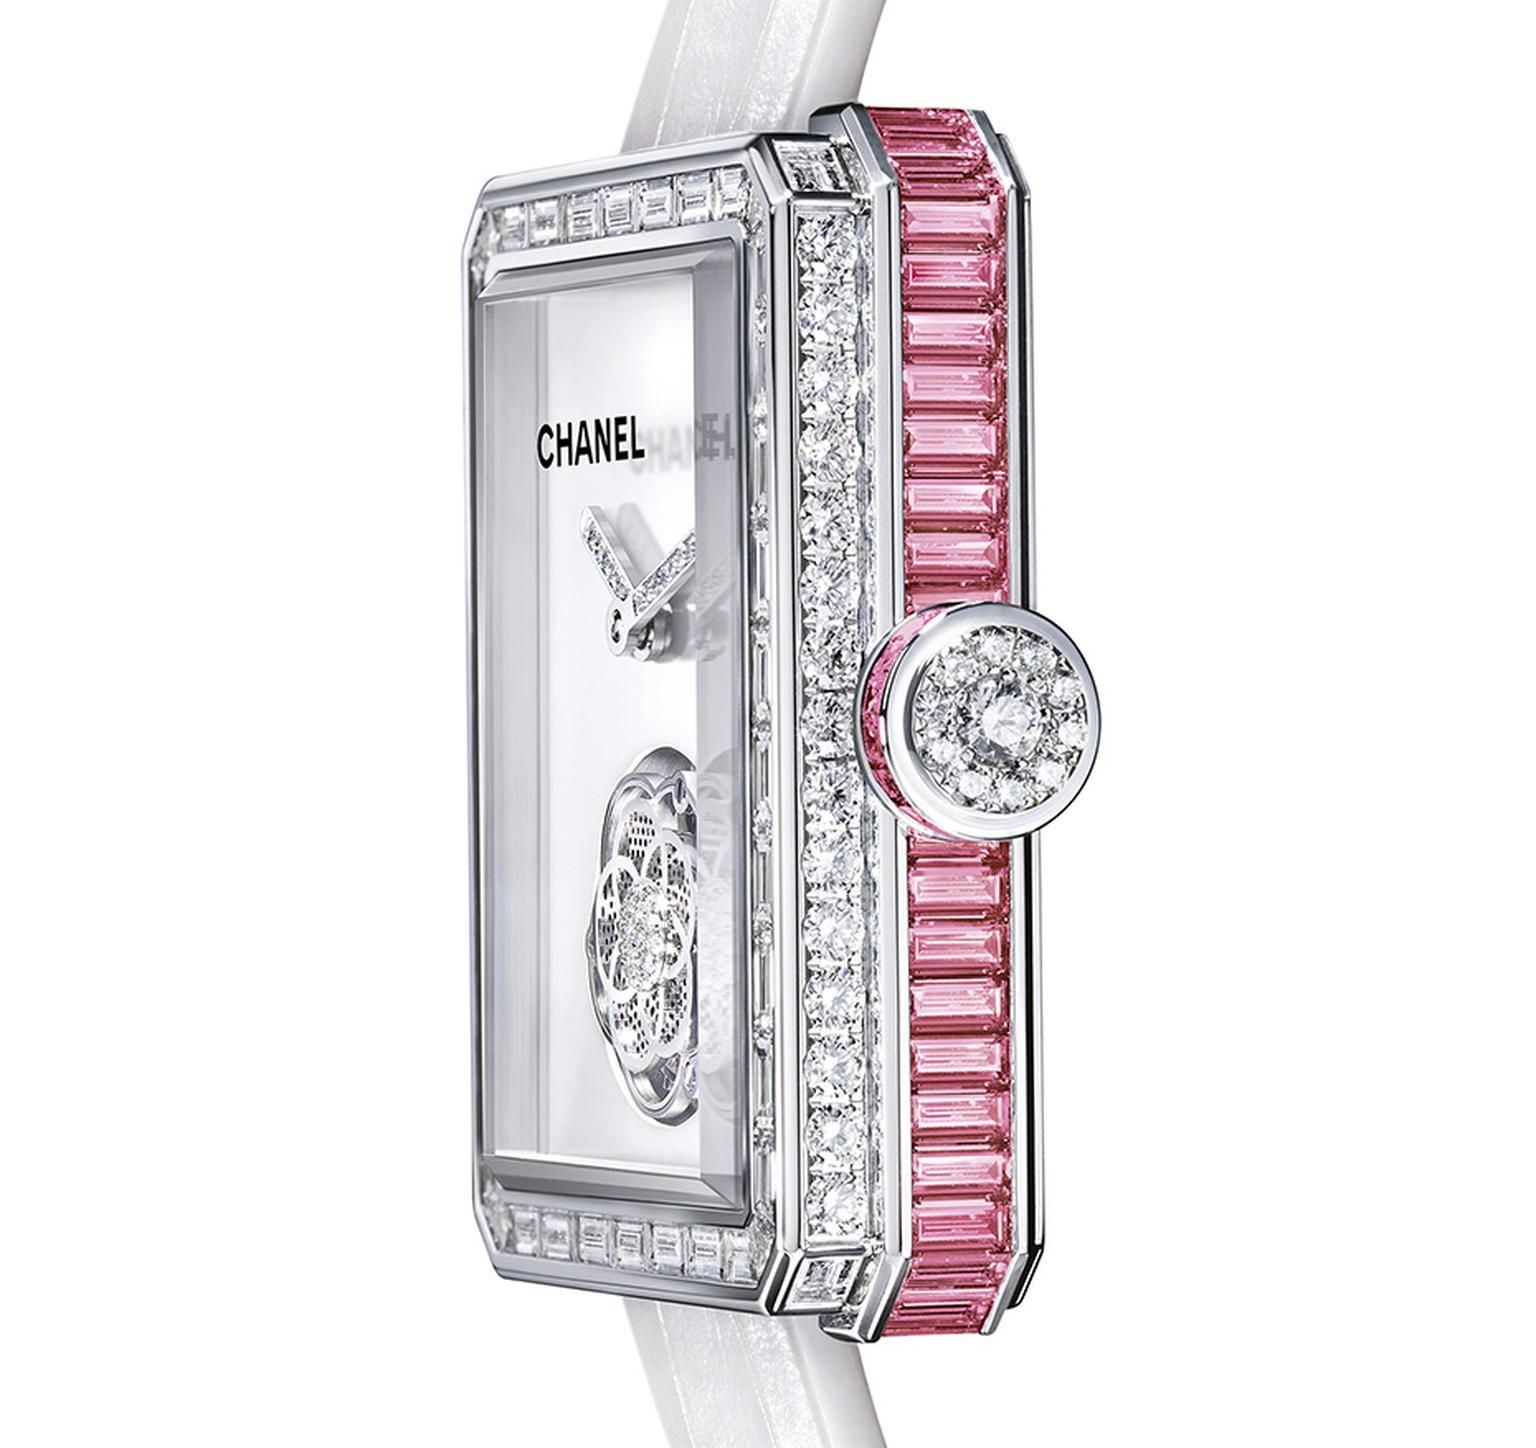 Chanel's new Première Flying Tourbillon watch for 2014 in white gold is set with 169 diamonds and 63 pink sapphires